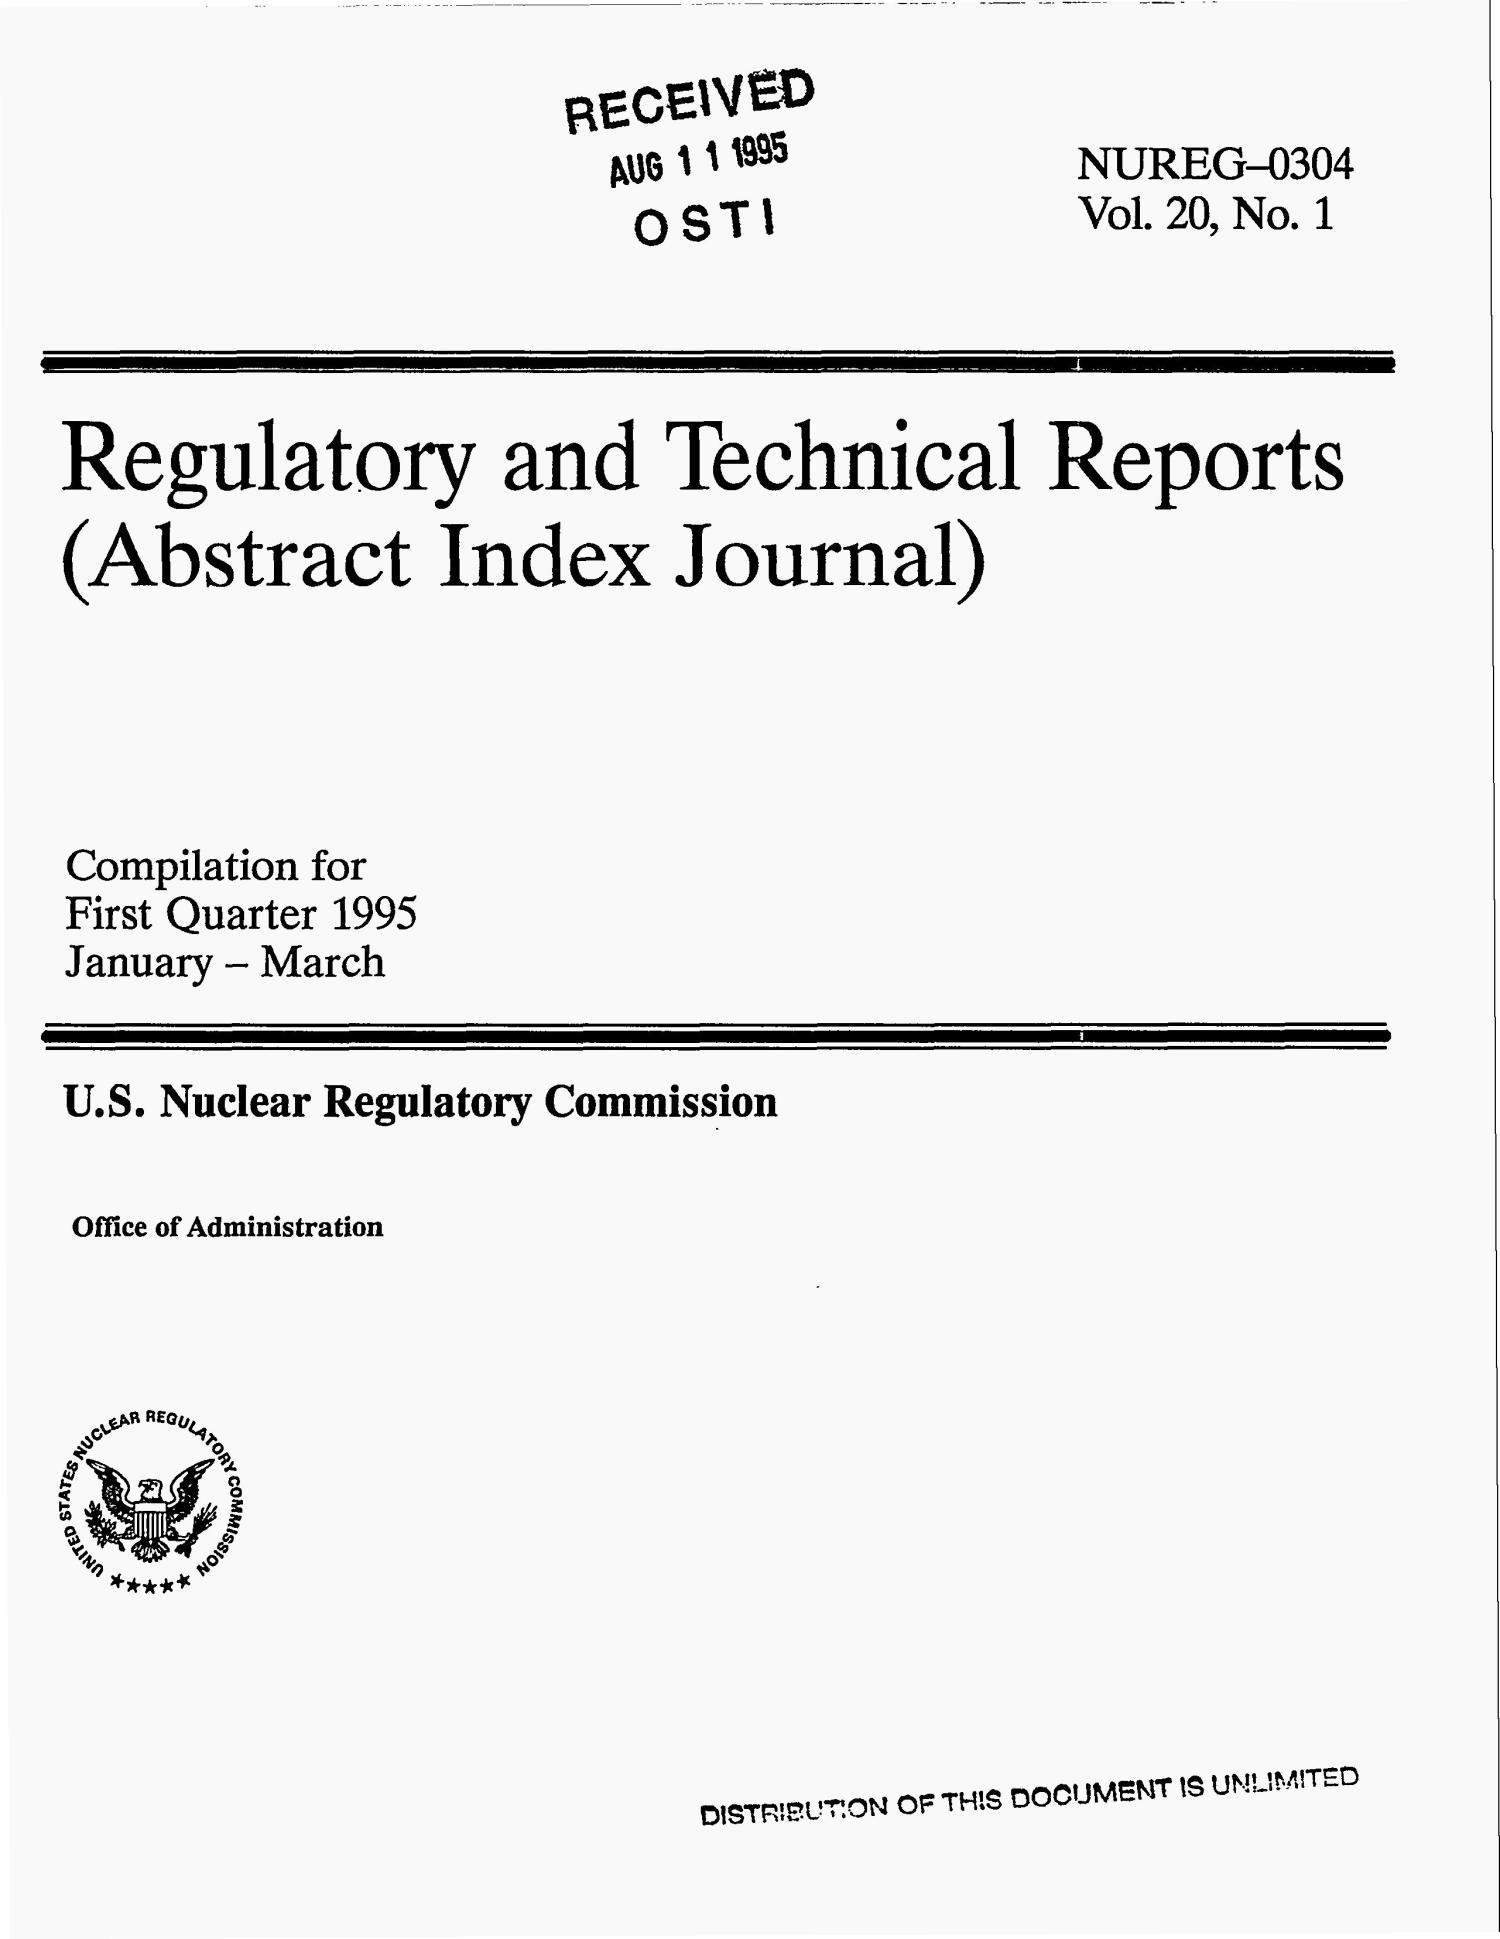 Regulatory and technical reports (abstract index journal). Volume 20, No. 1: First quarterly January--March 1995                                                                                                      [Sequence #]: 1 of 50